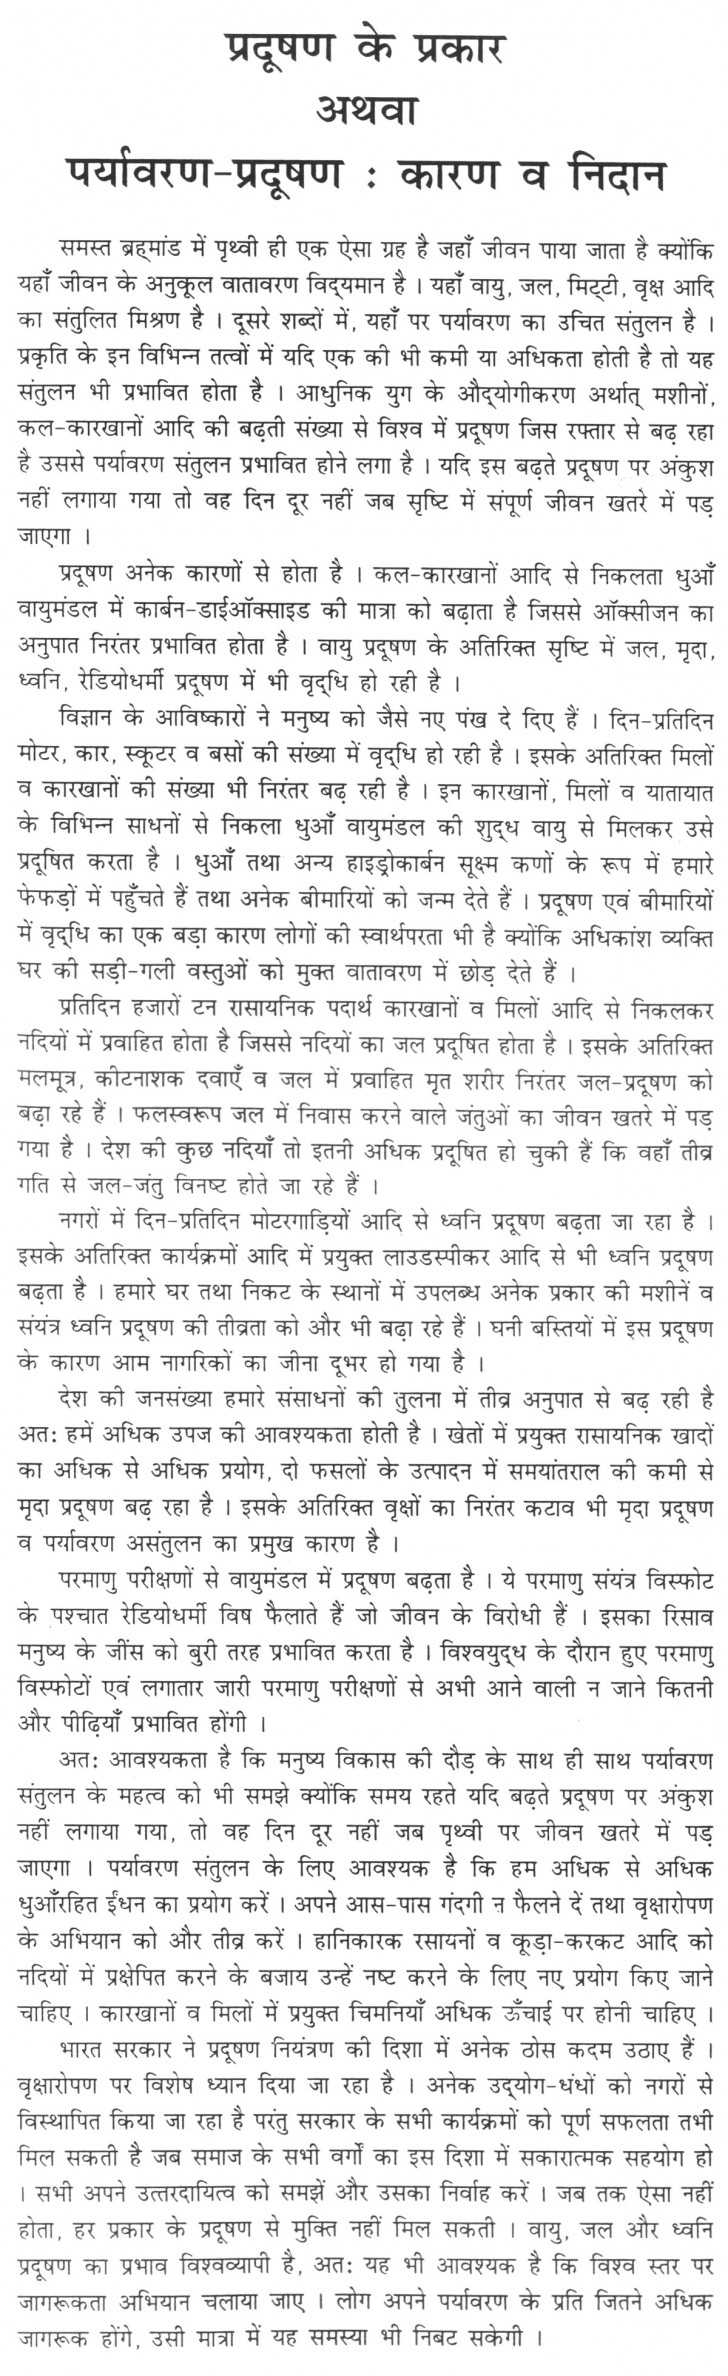 014 Good Habits Essay In Hindi Exceptional Habit Wikipedia Eating 728